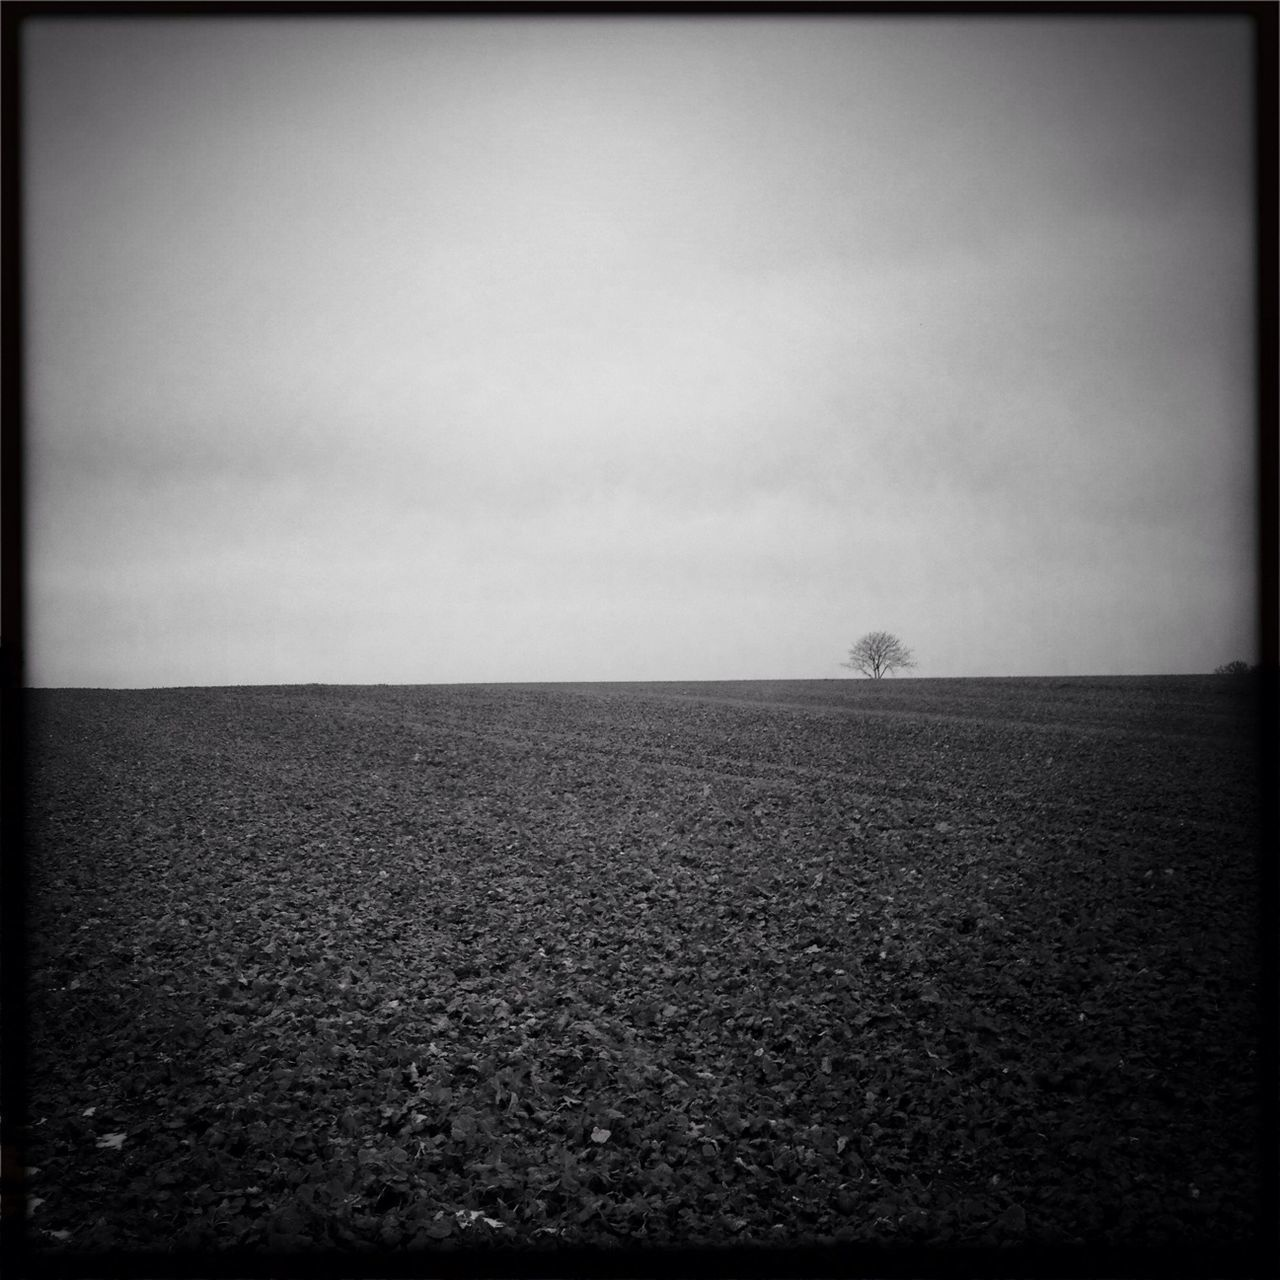 Ploughed field against sky